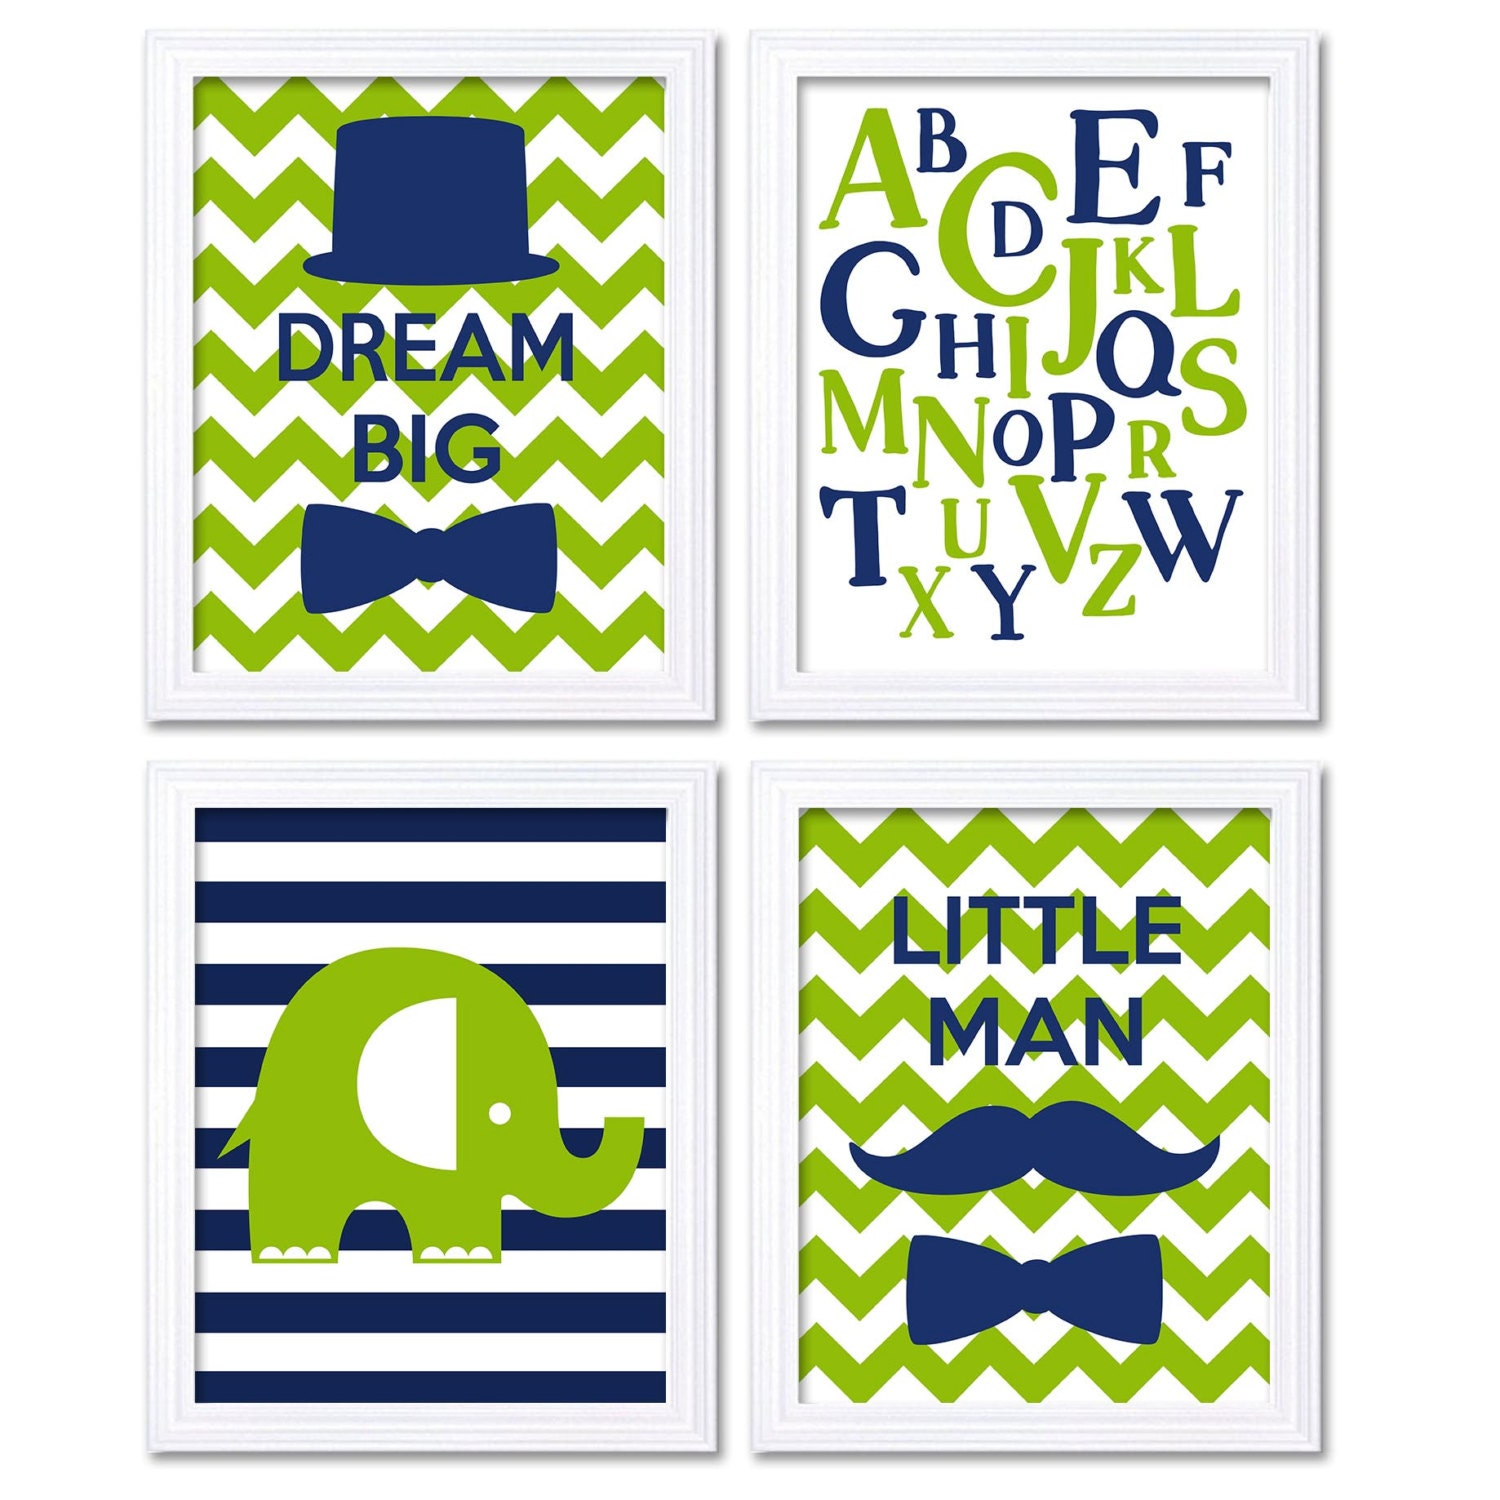 Dream Big Little Man Nursery Art Navy Blue Lime Green Elephant Nursery Decor Print Set of 4 Mustache